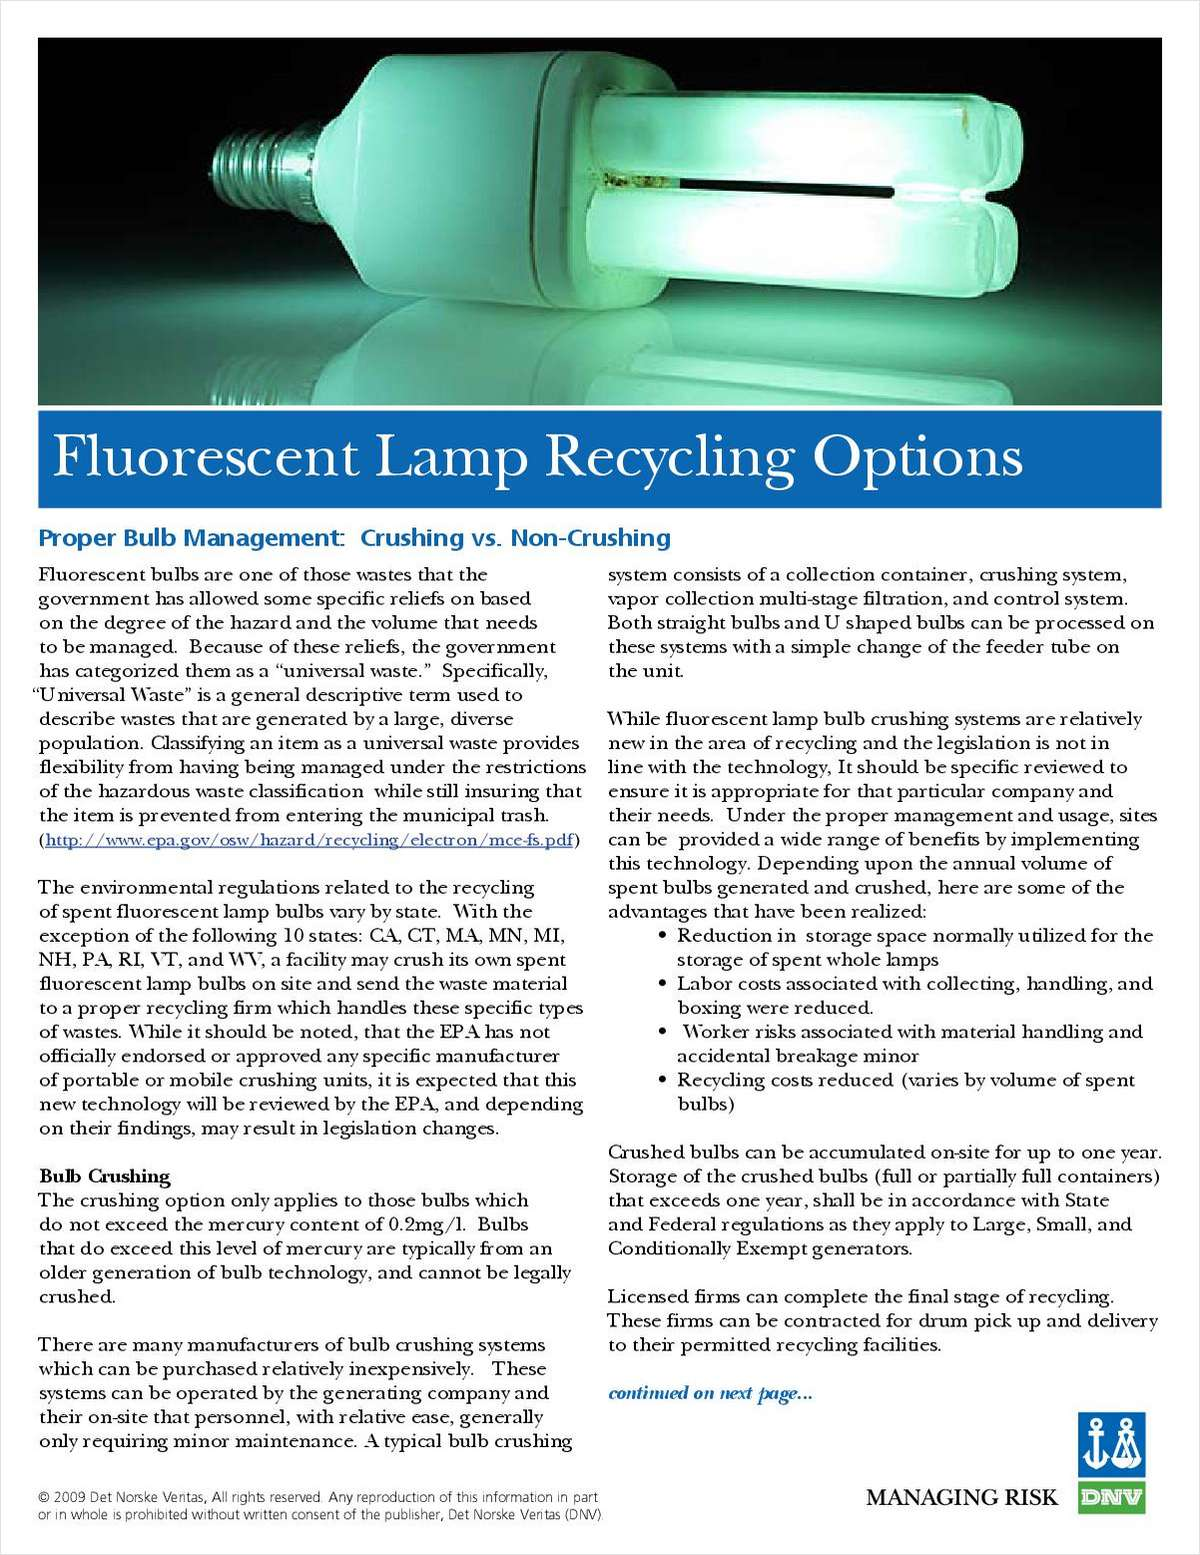 Fluorescent Lamp Recycling Options